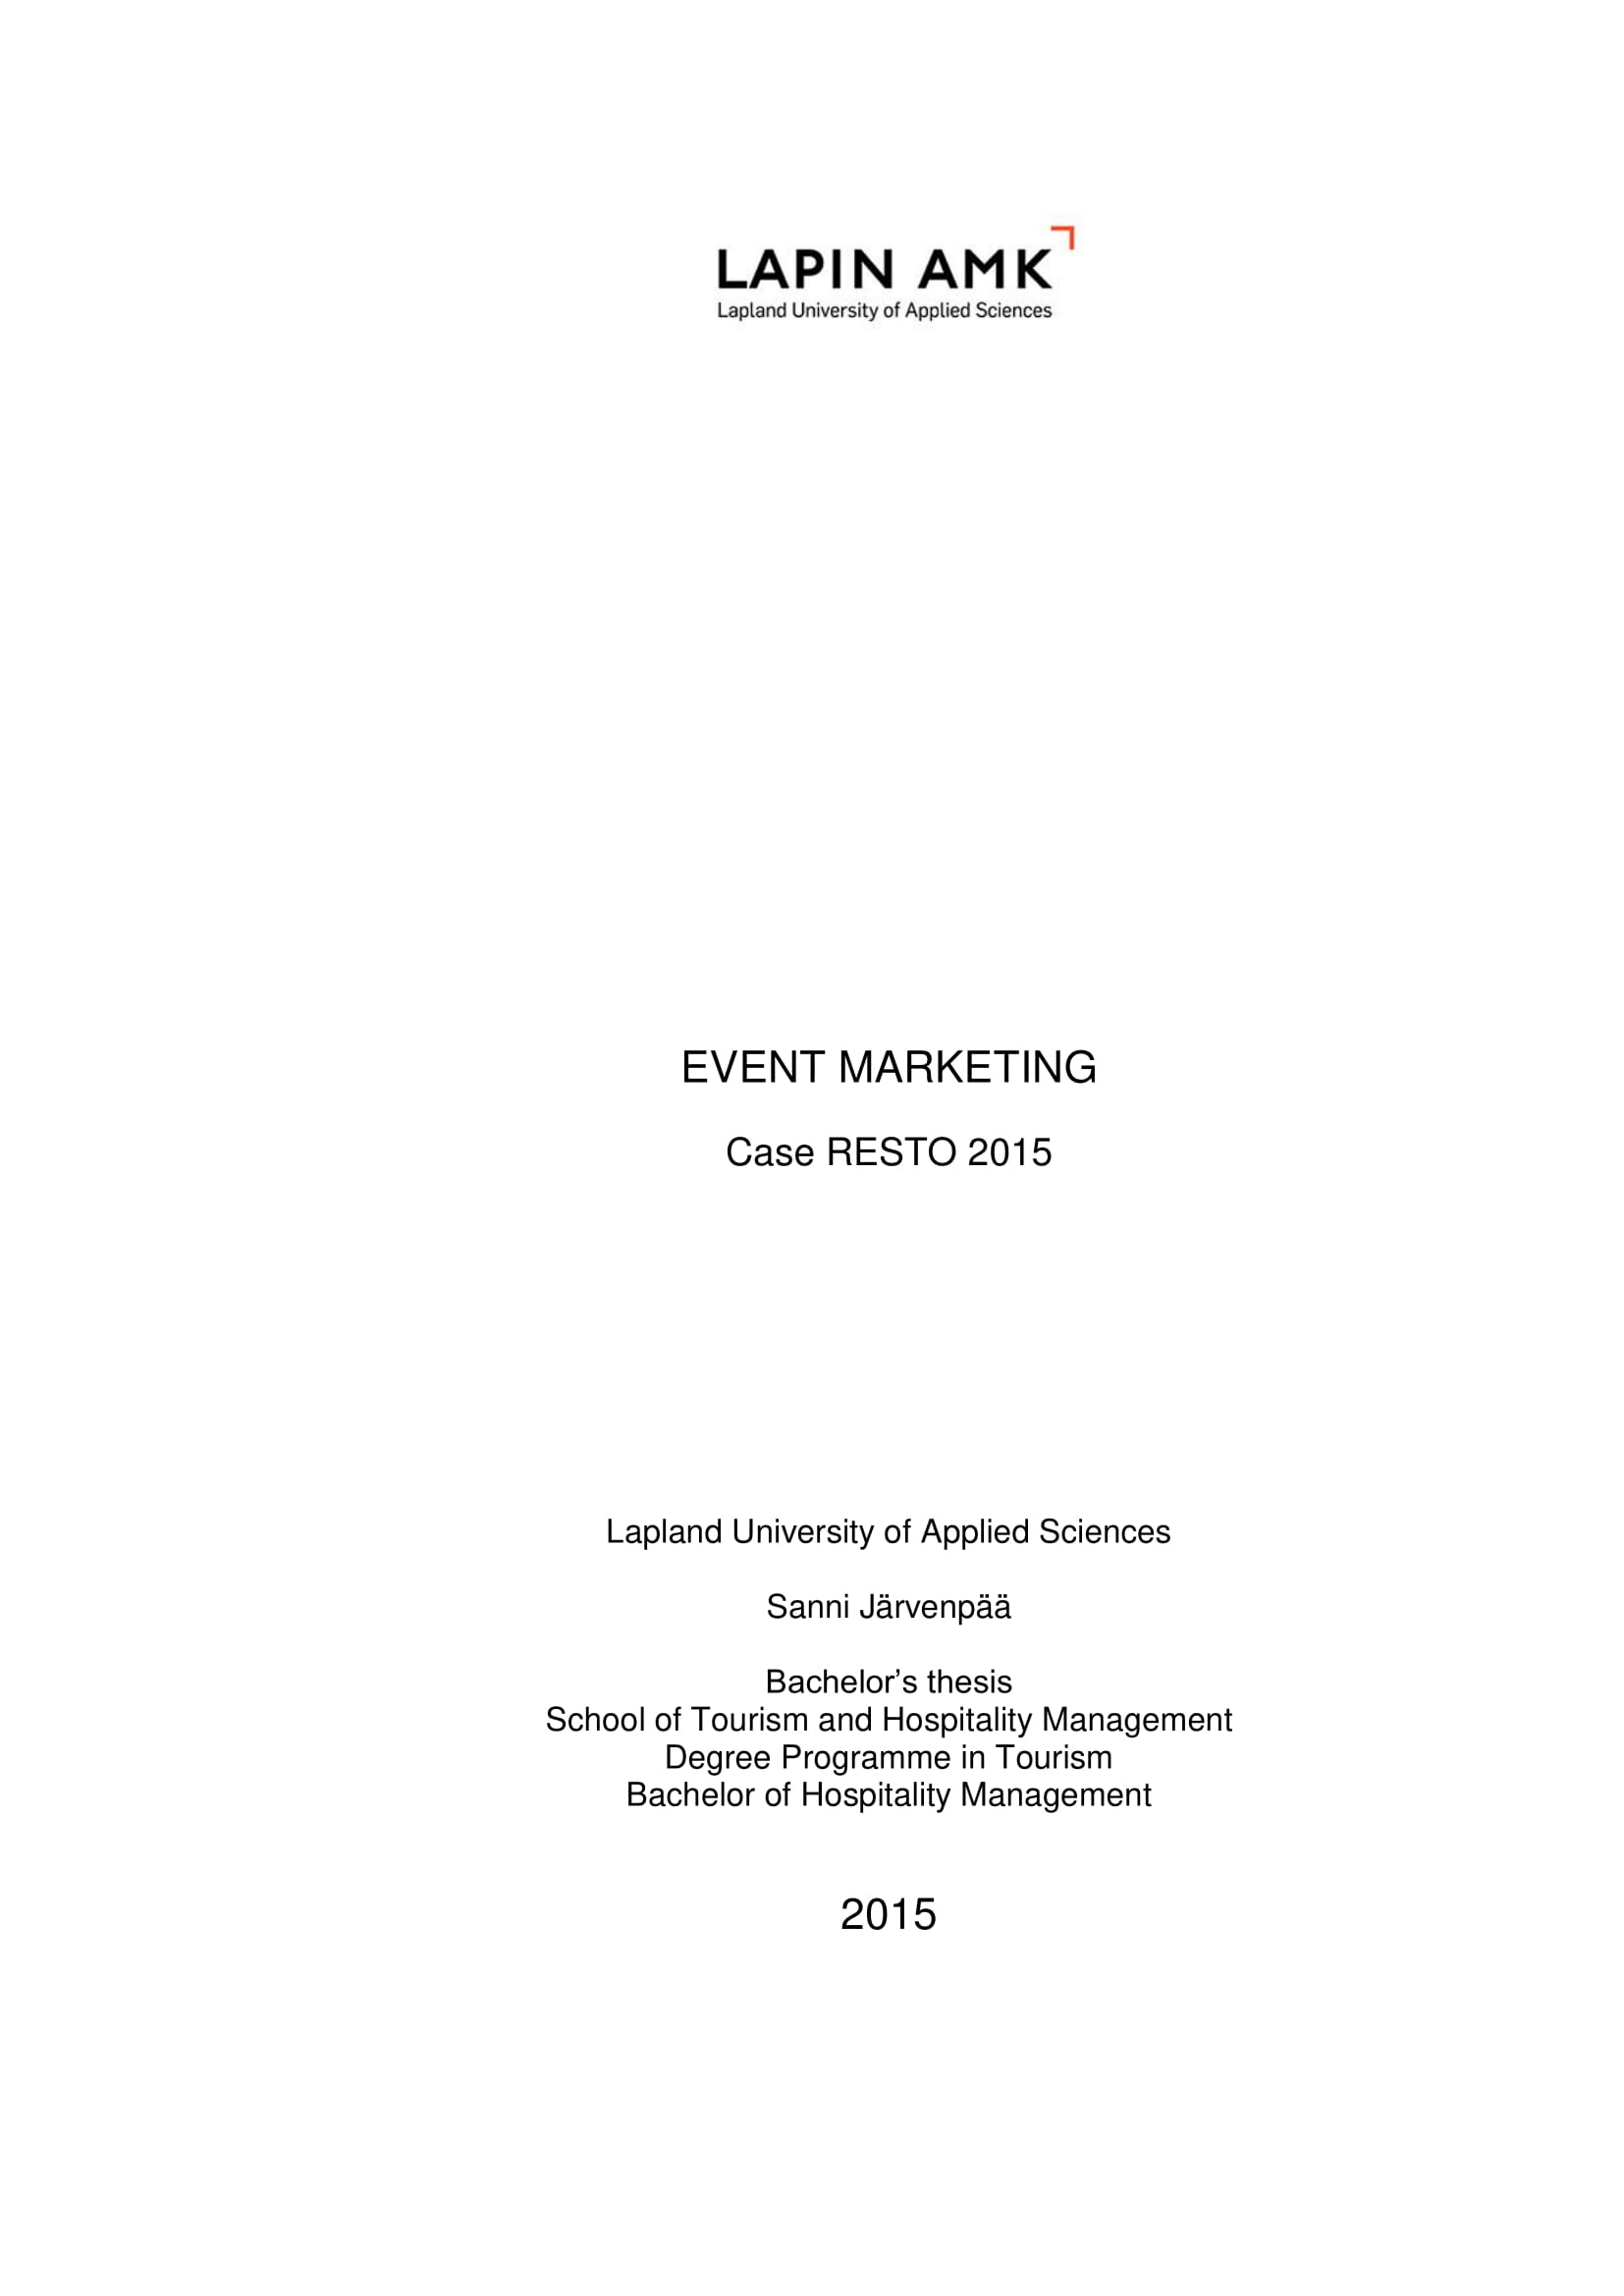 detailed event marketing plan example 01